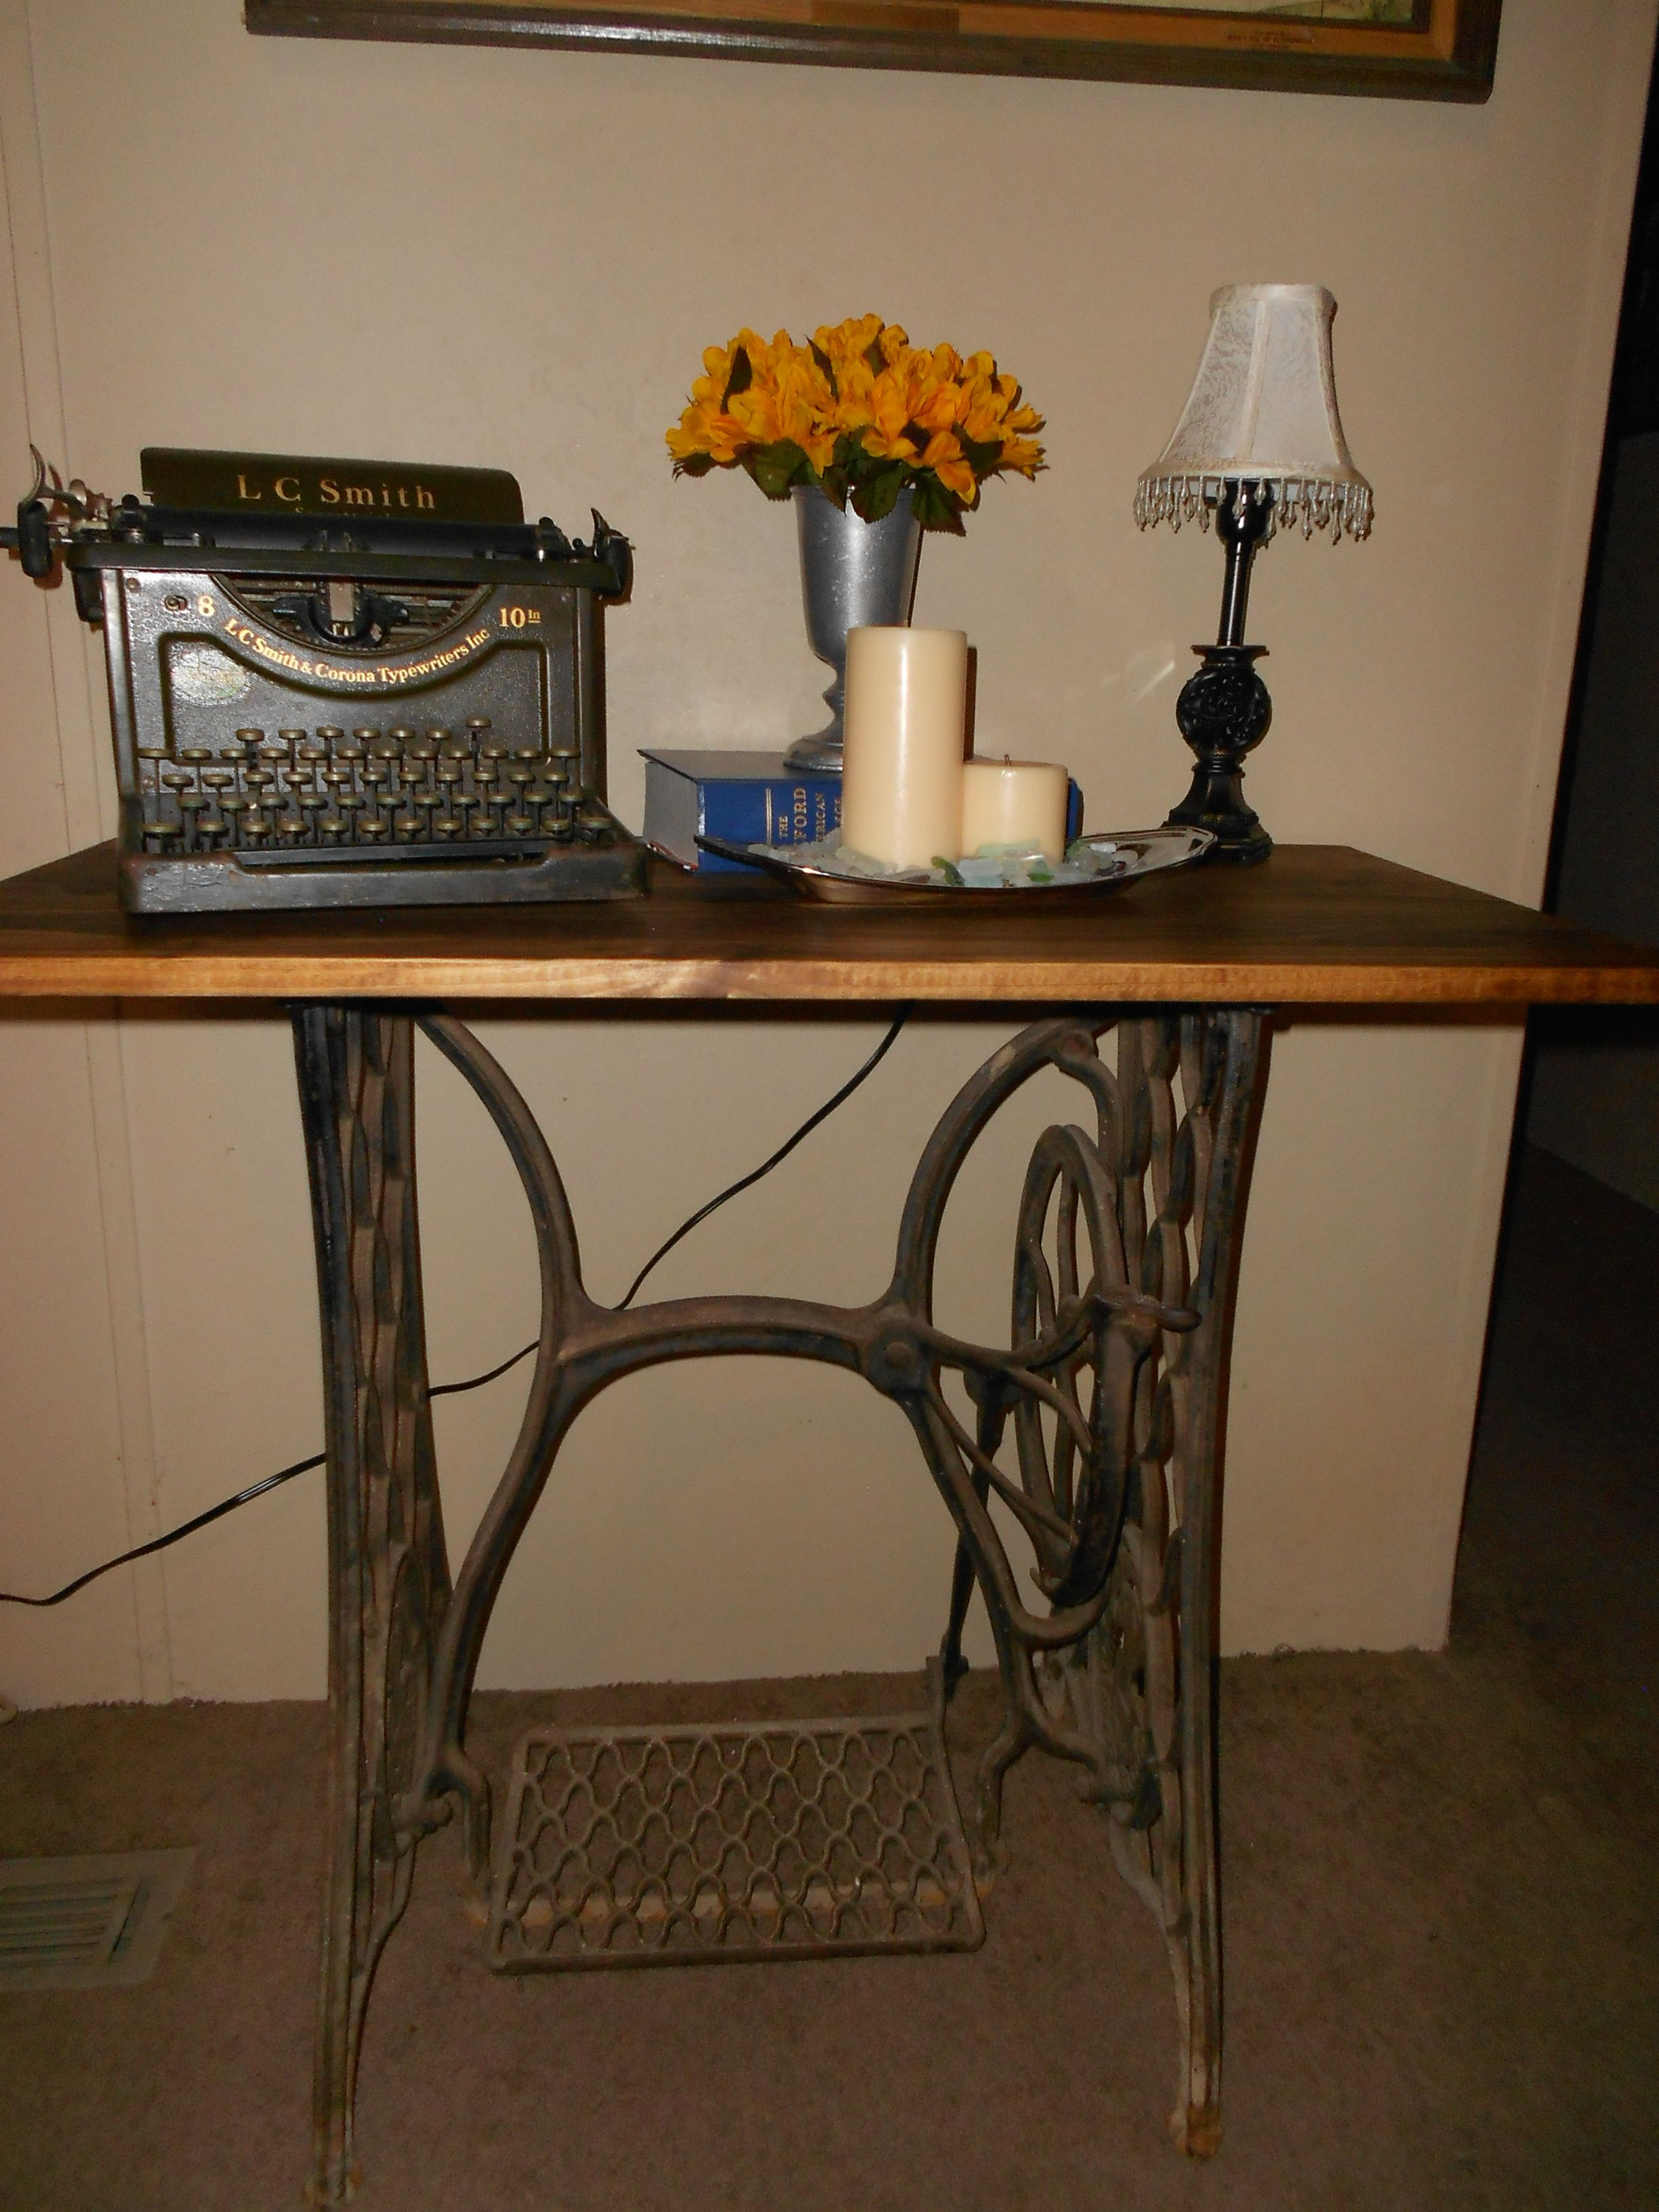 This is my DIY project I made an entry table from antique cast iron